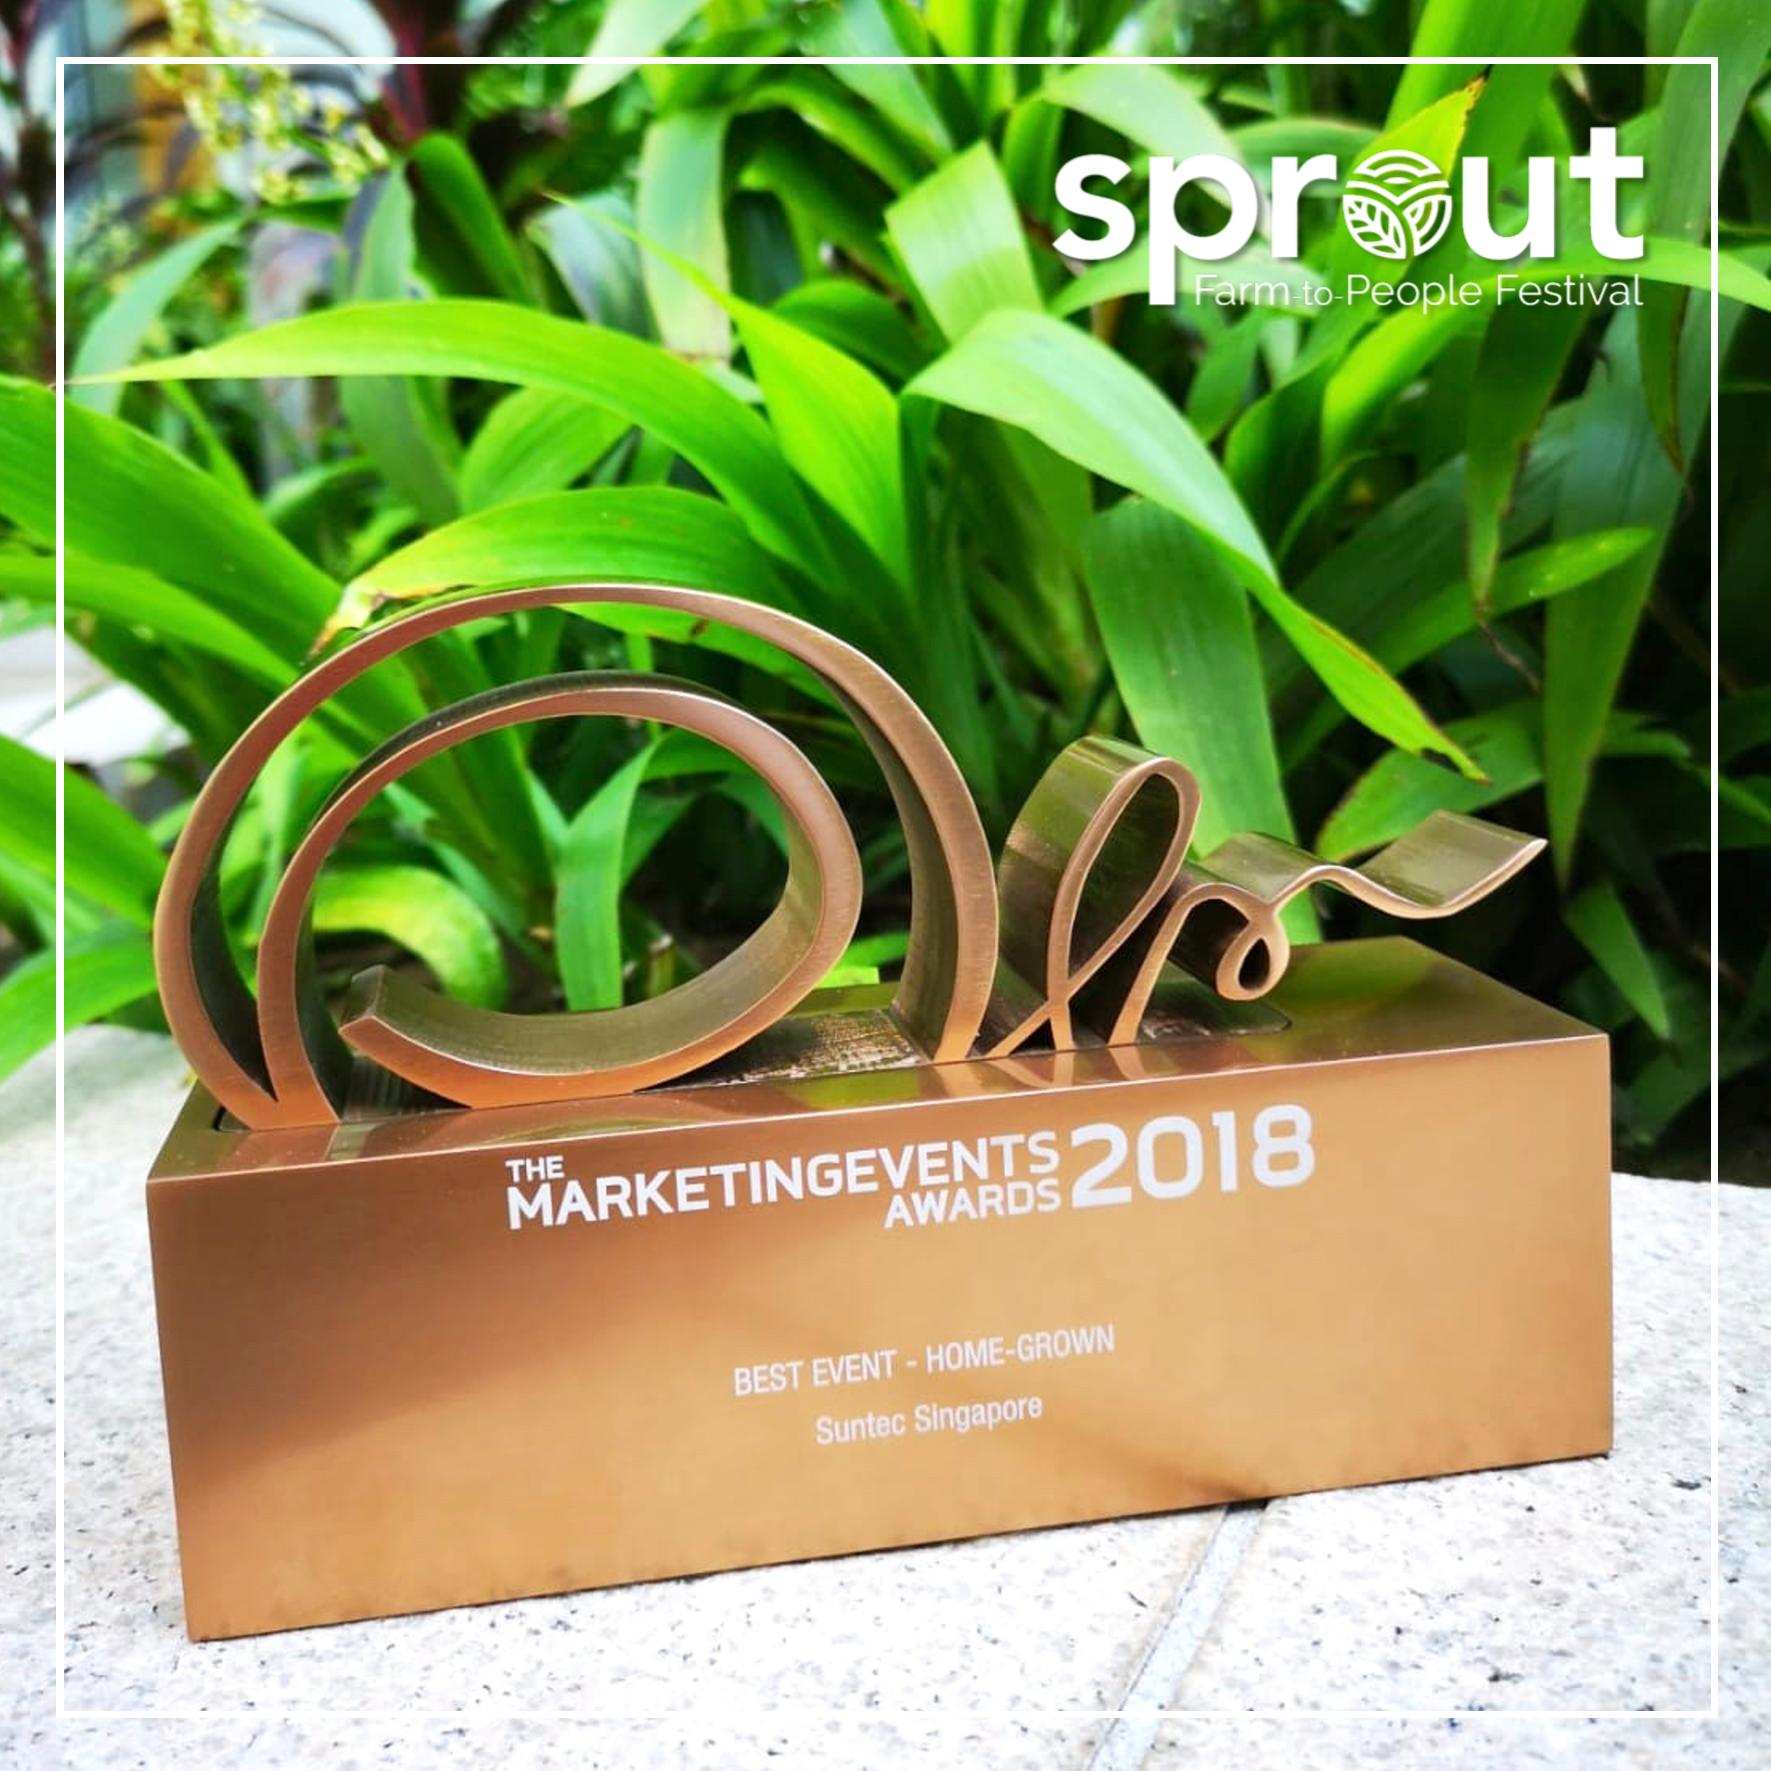 Sprout Award Best Event Home-Grown.jpg